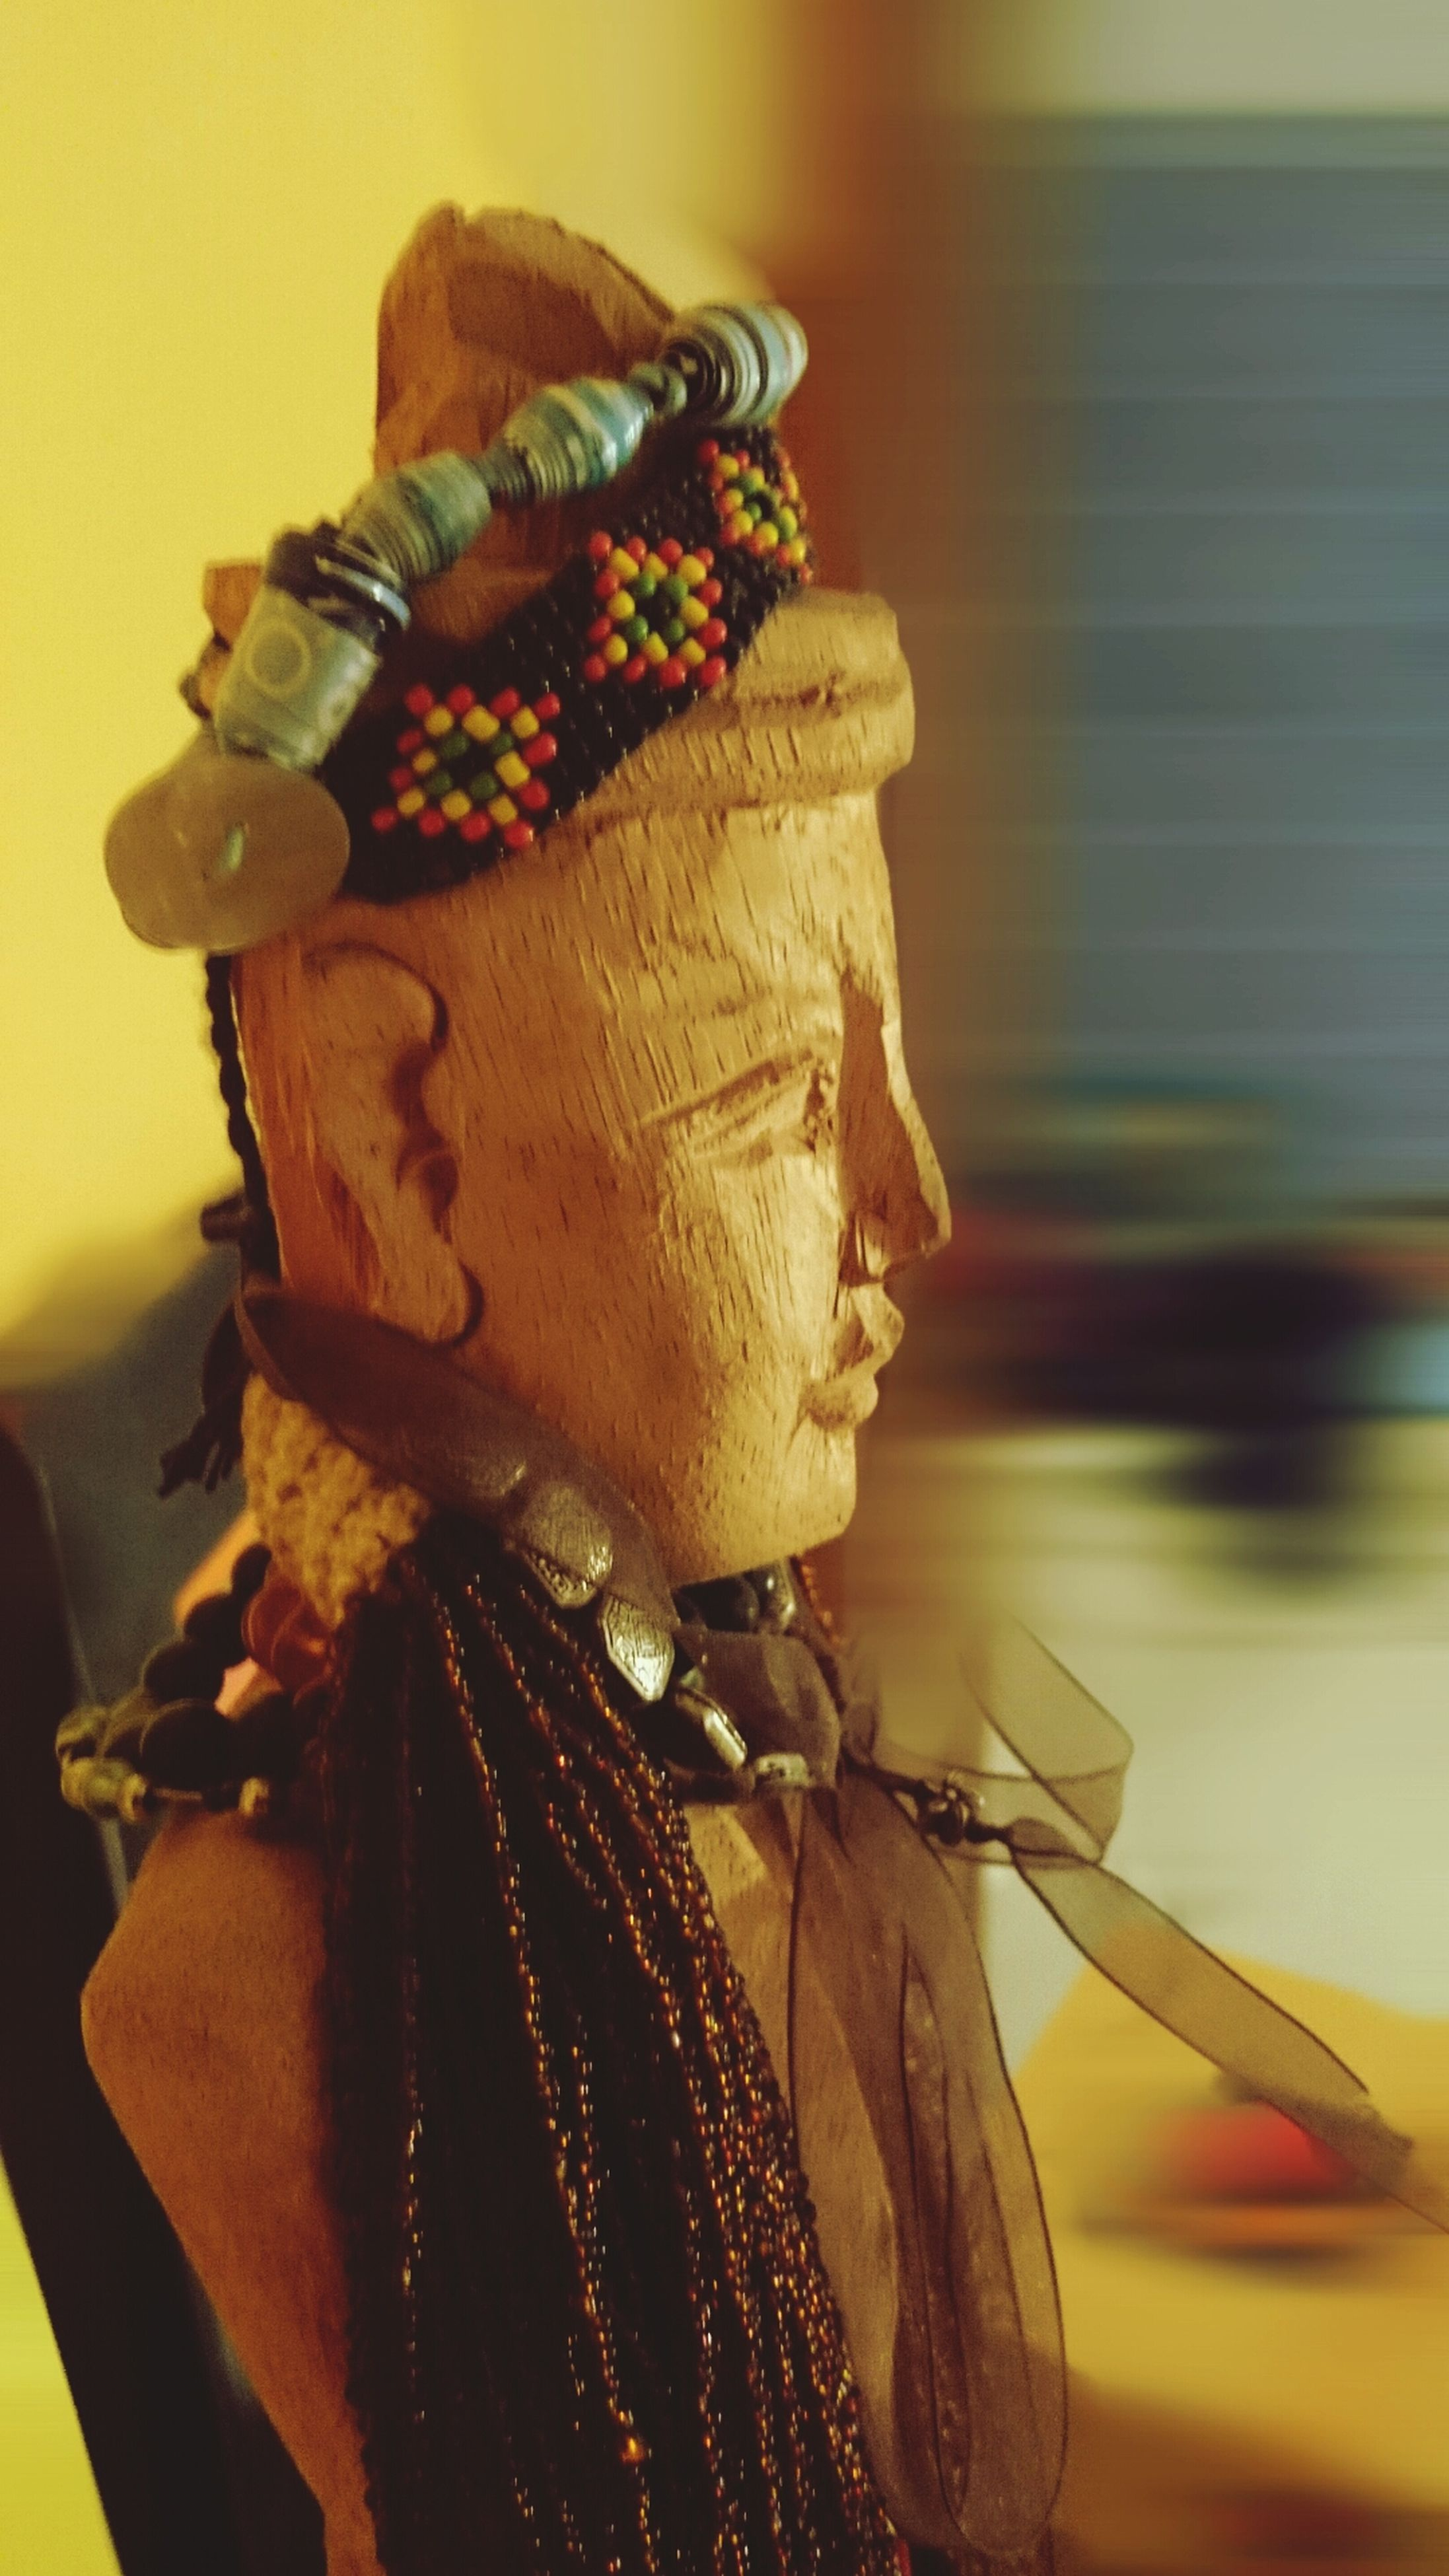 close-up, focus on foreground, art and craft, art, creativity, animal representation, human representation, indoors, sculpture, statue, yellow, no people, day, selective focus, figurine, brown, craft